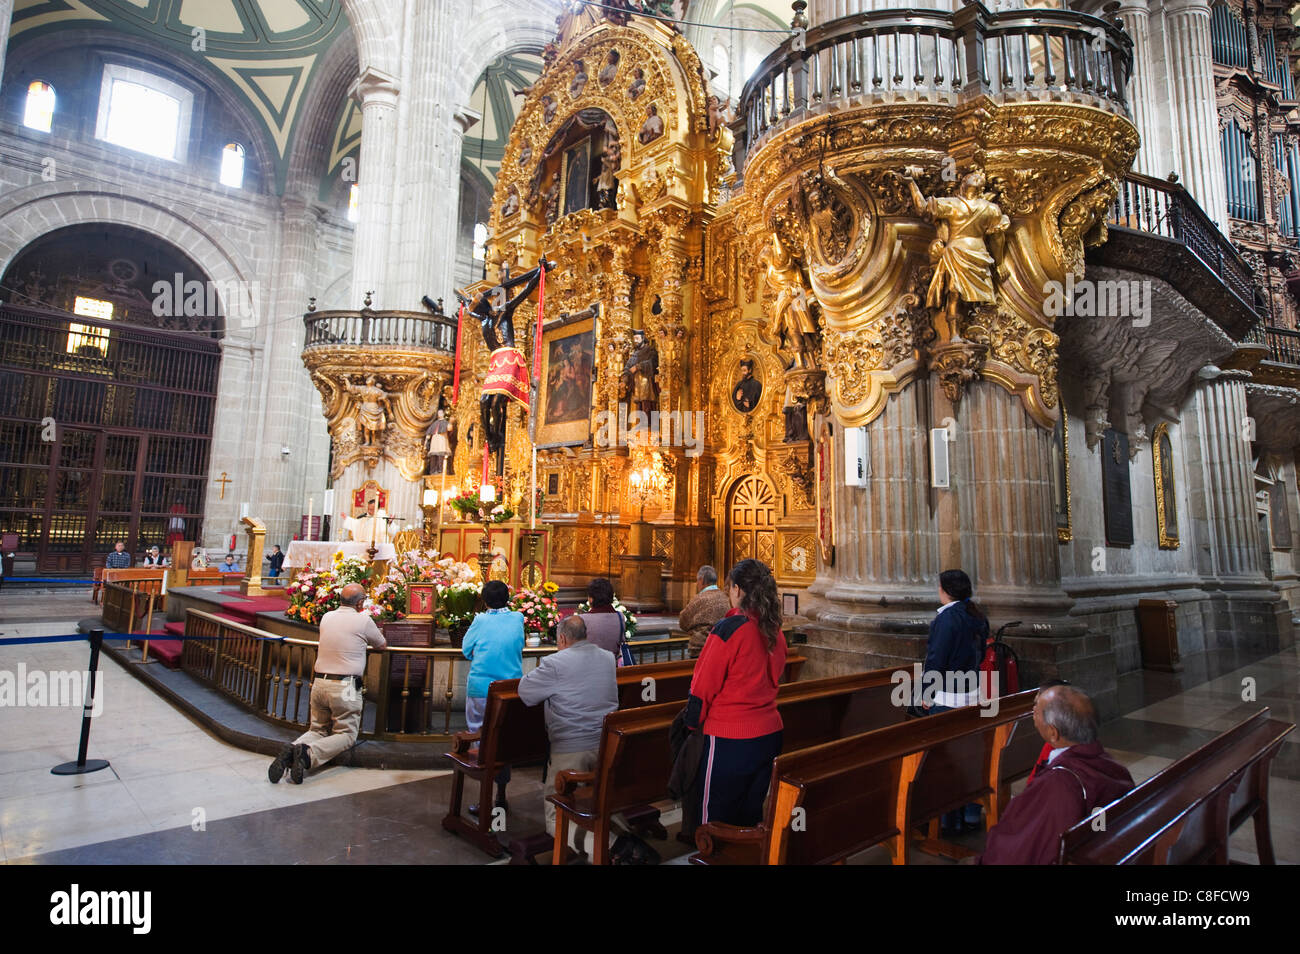 Church service at Cathedral Metropolitana, District Federal, Mexico City, Mexico - Stock Image